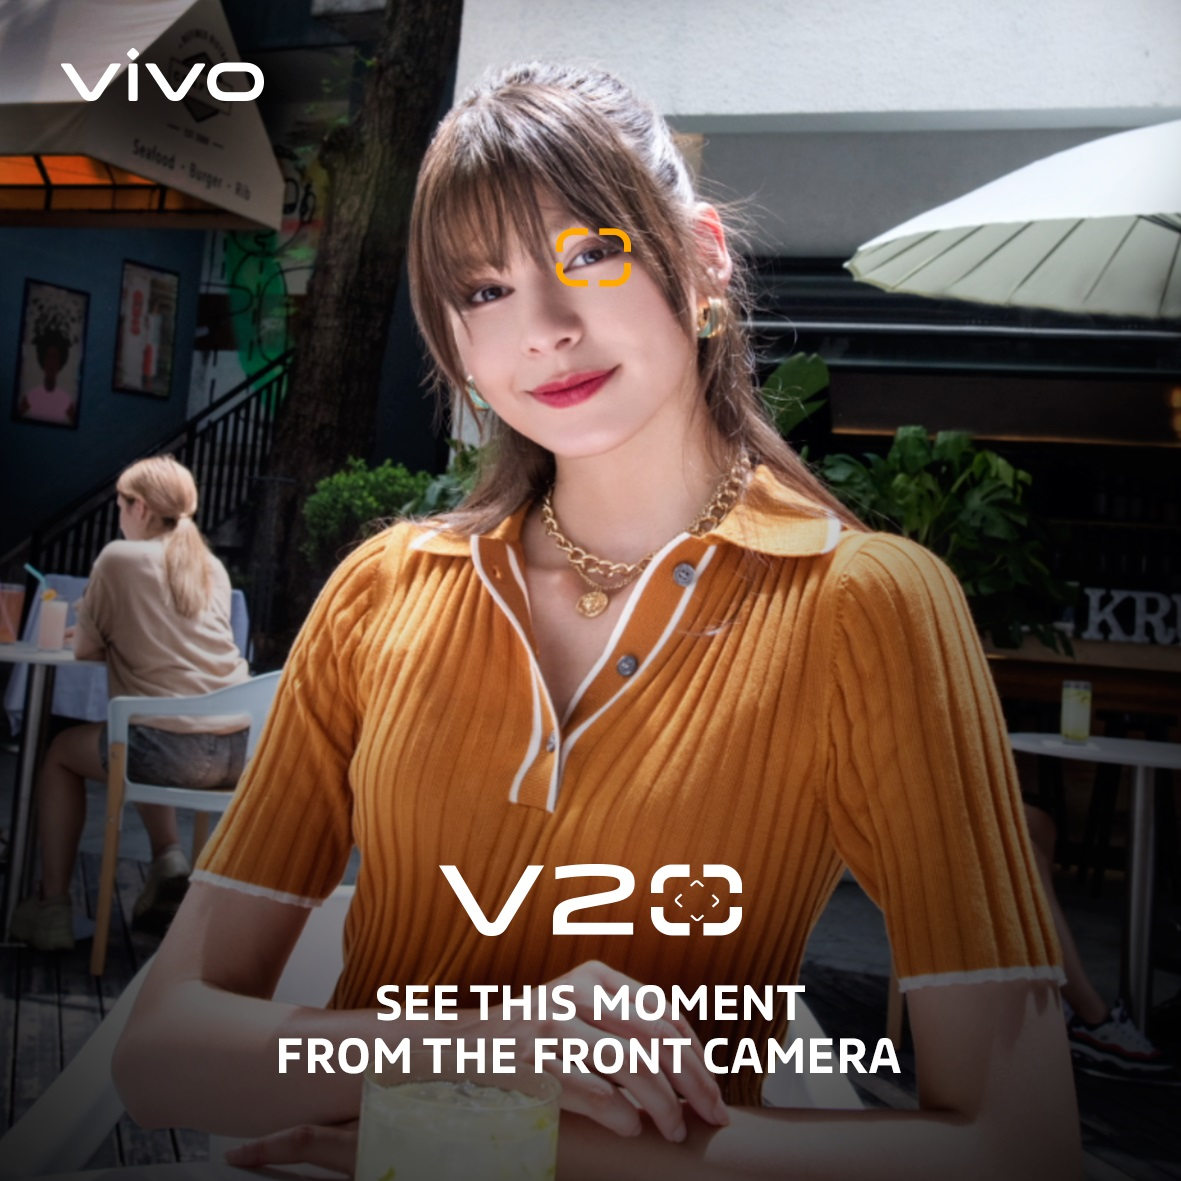 Up Your Selfie Game with the Improved vivo V20 Series' Front Camera